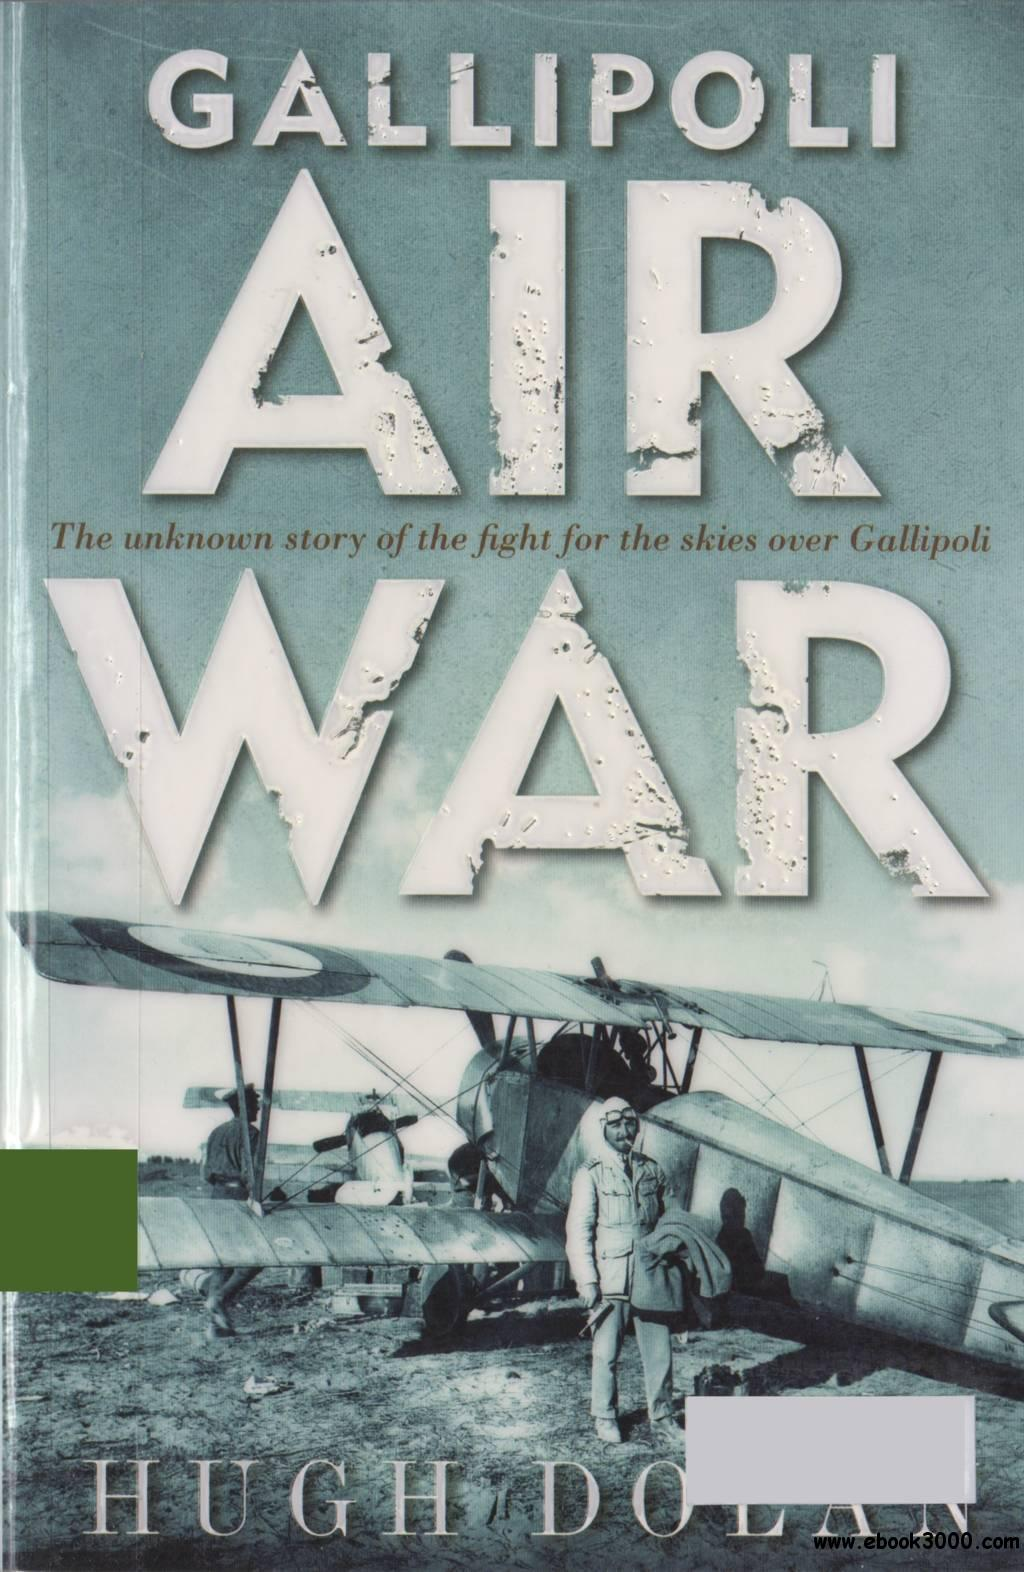 Gallipoli Air War - The Unknown Story of the Fight for the Skies over Gallipoli free download